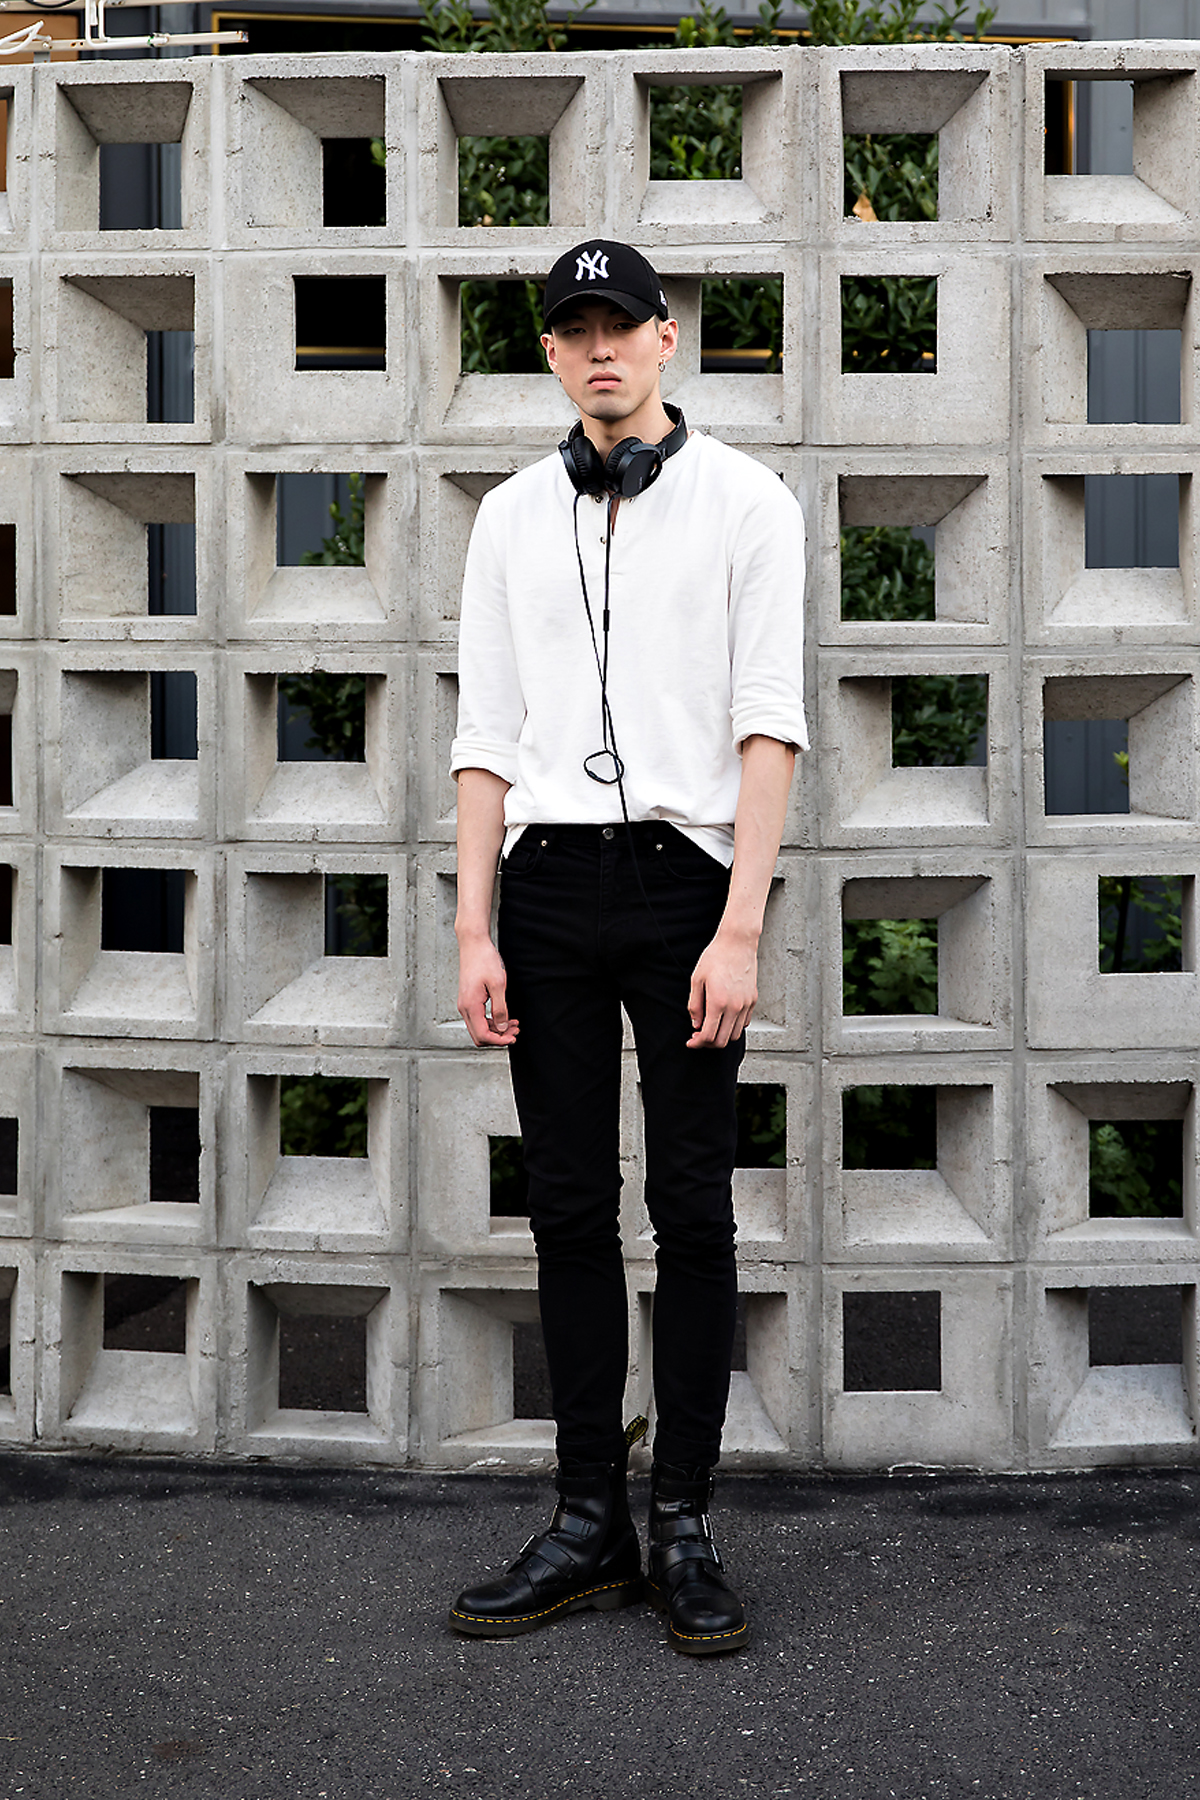 Kim Chanil, Street Fashion 2017 in Seoul.jpg